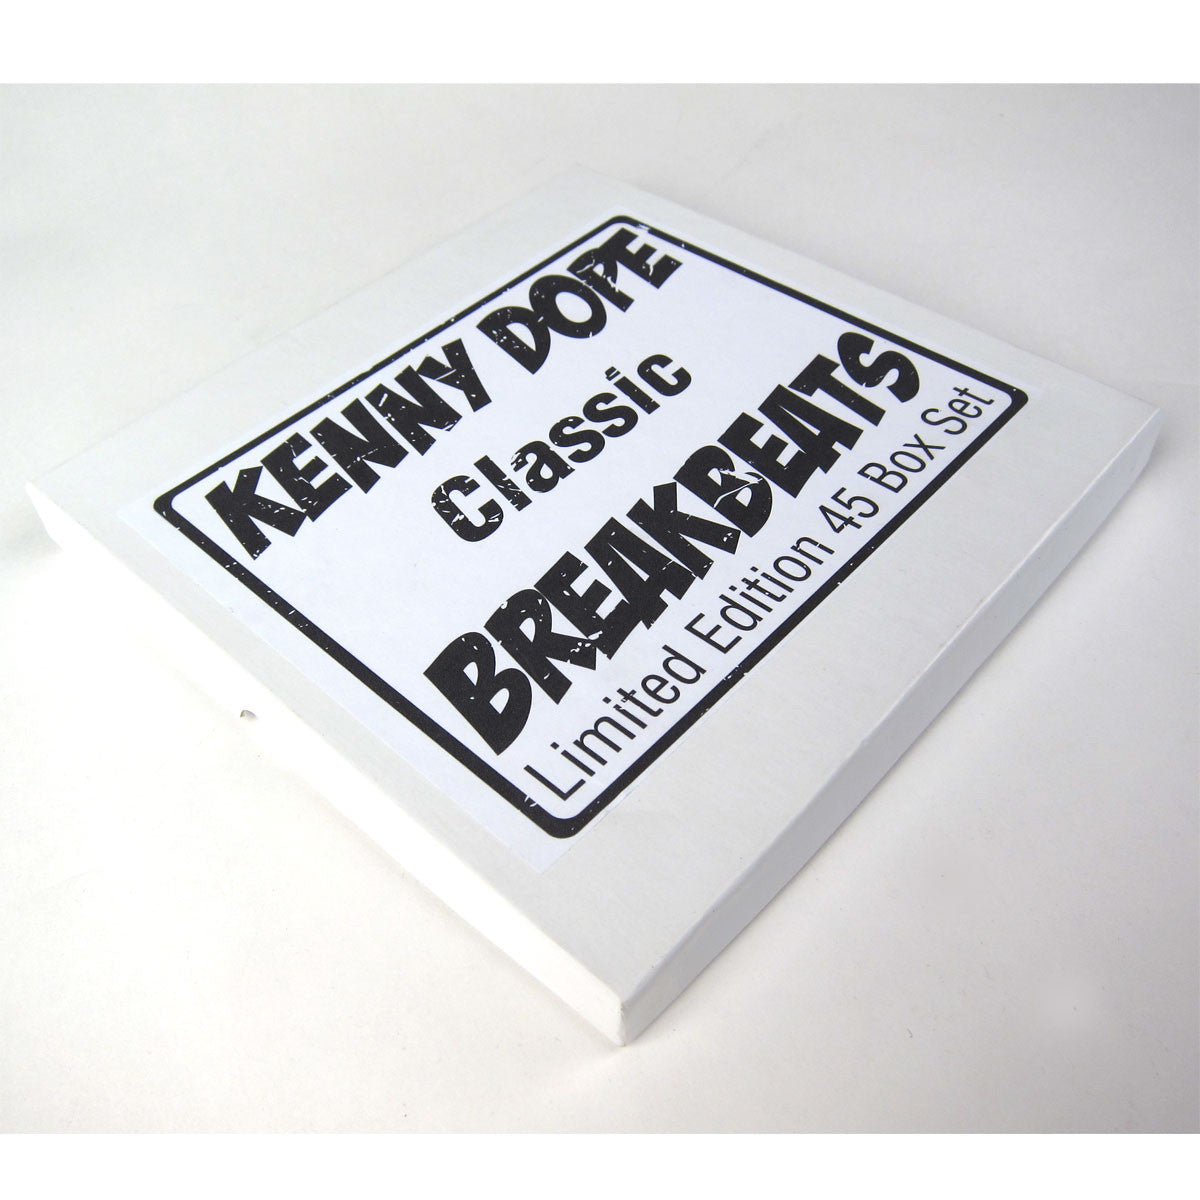 Kenny Dope: Classic Breakbeats Limited Edition 45 Boxset box